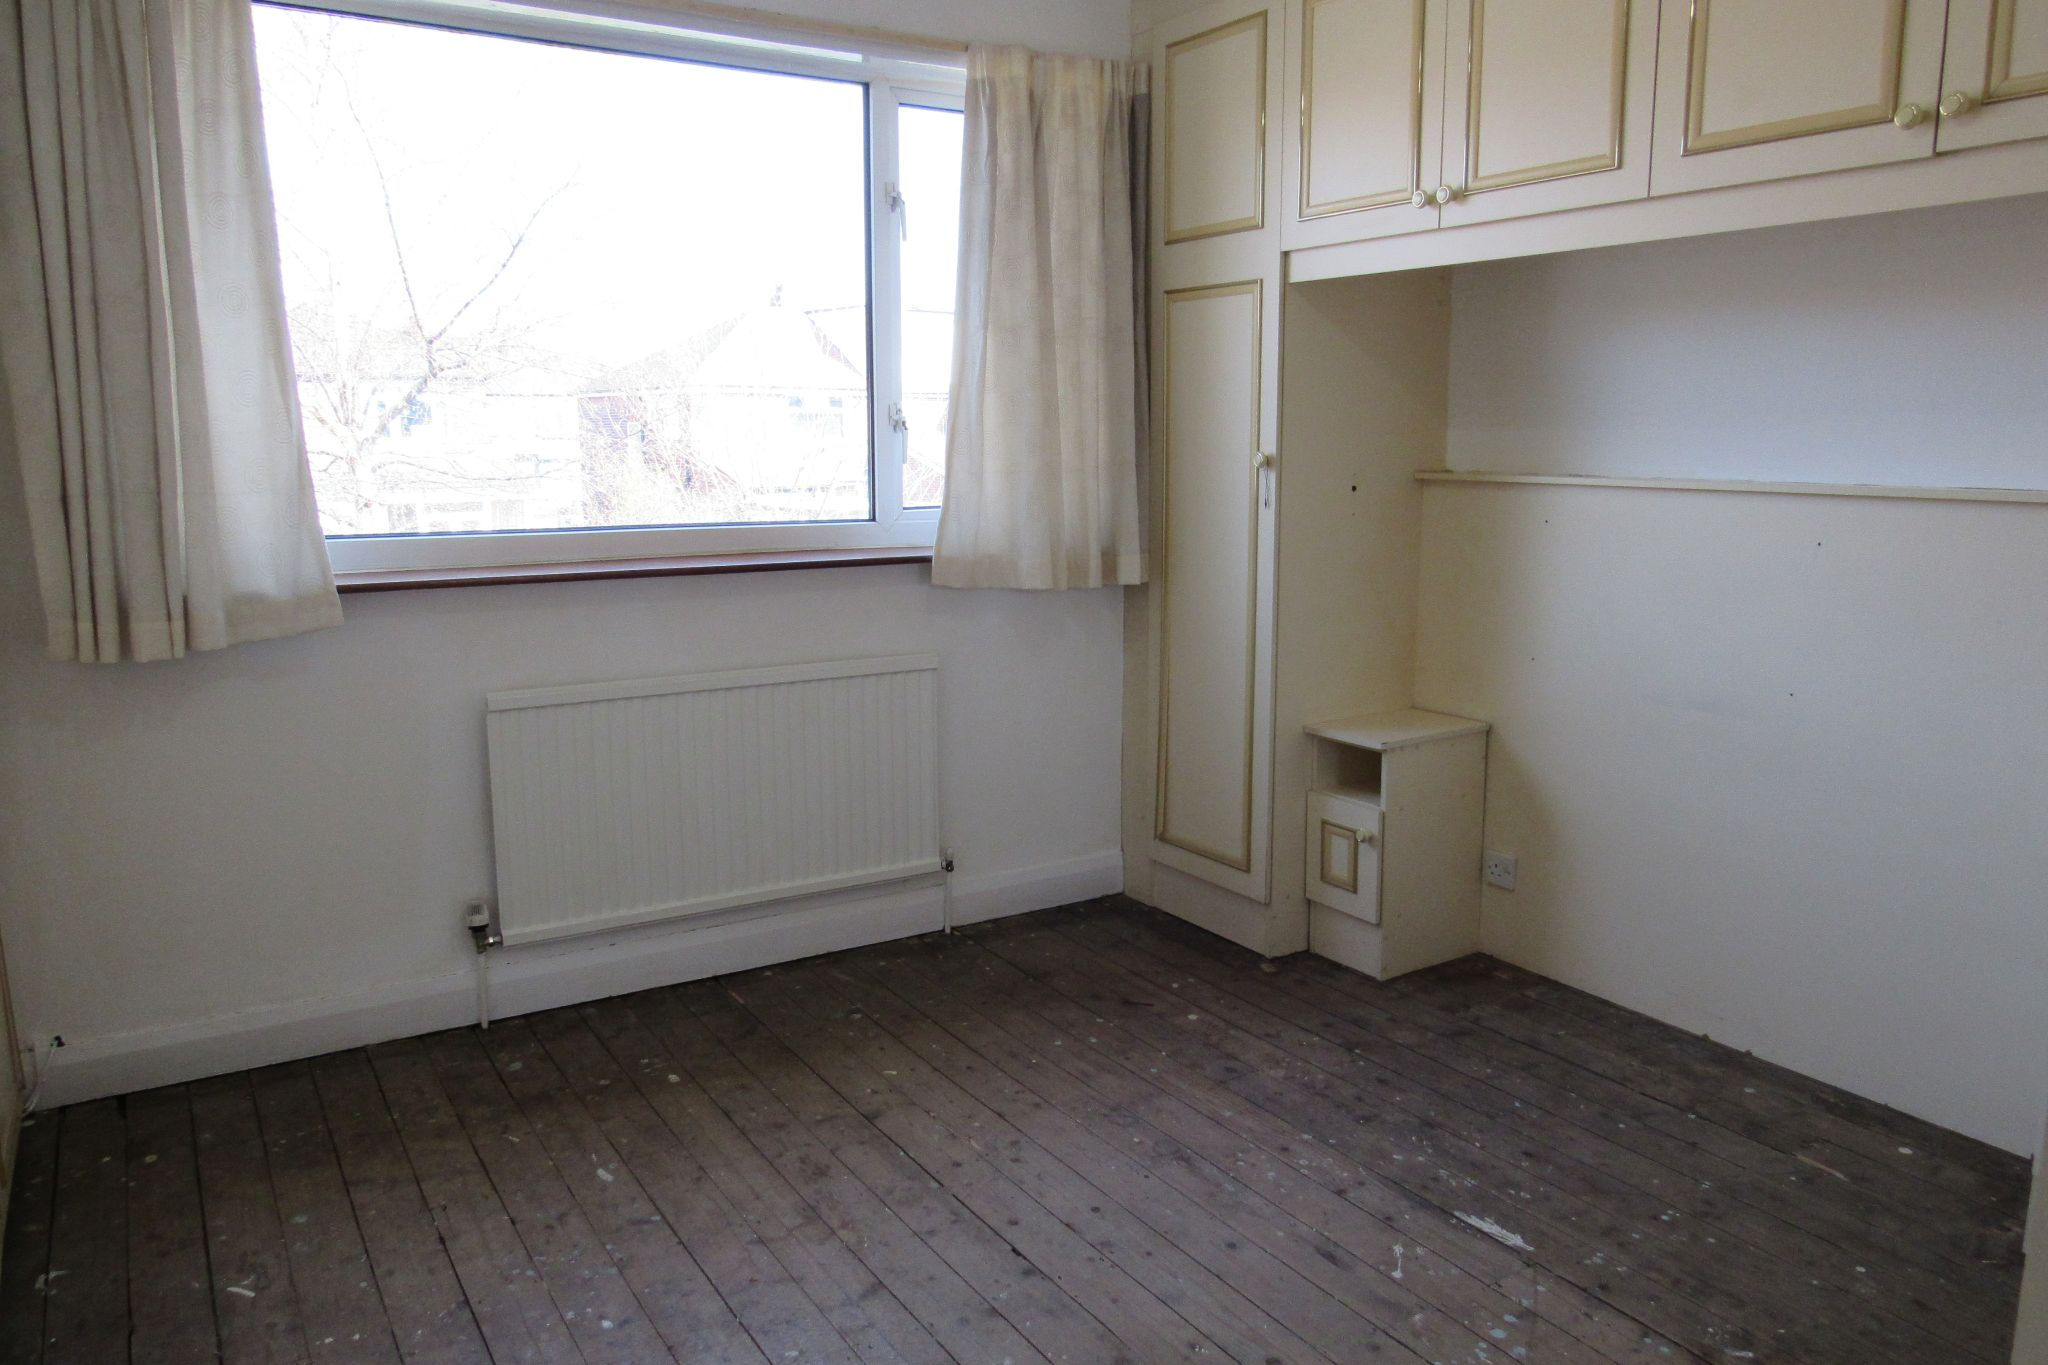 3 bedroom end terraced house SSTC in Manchester - Photograph 16.